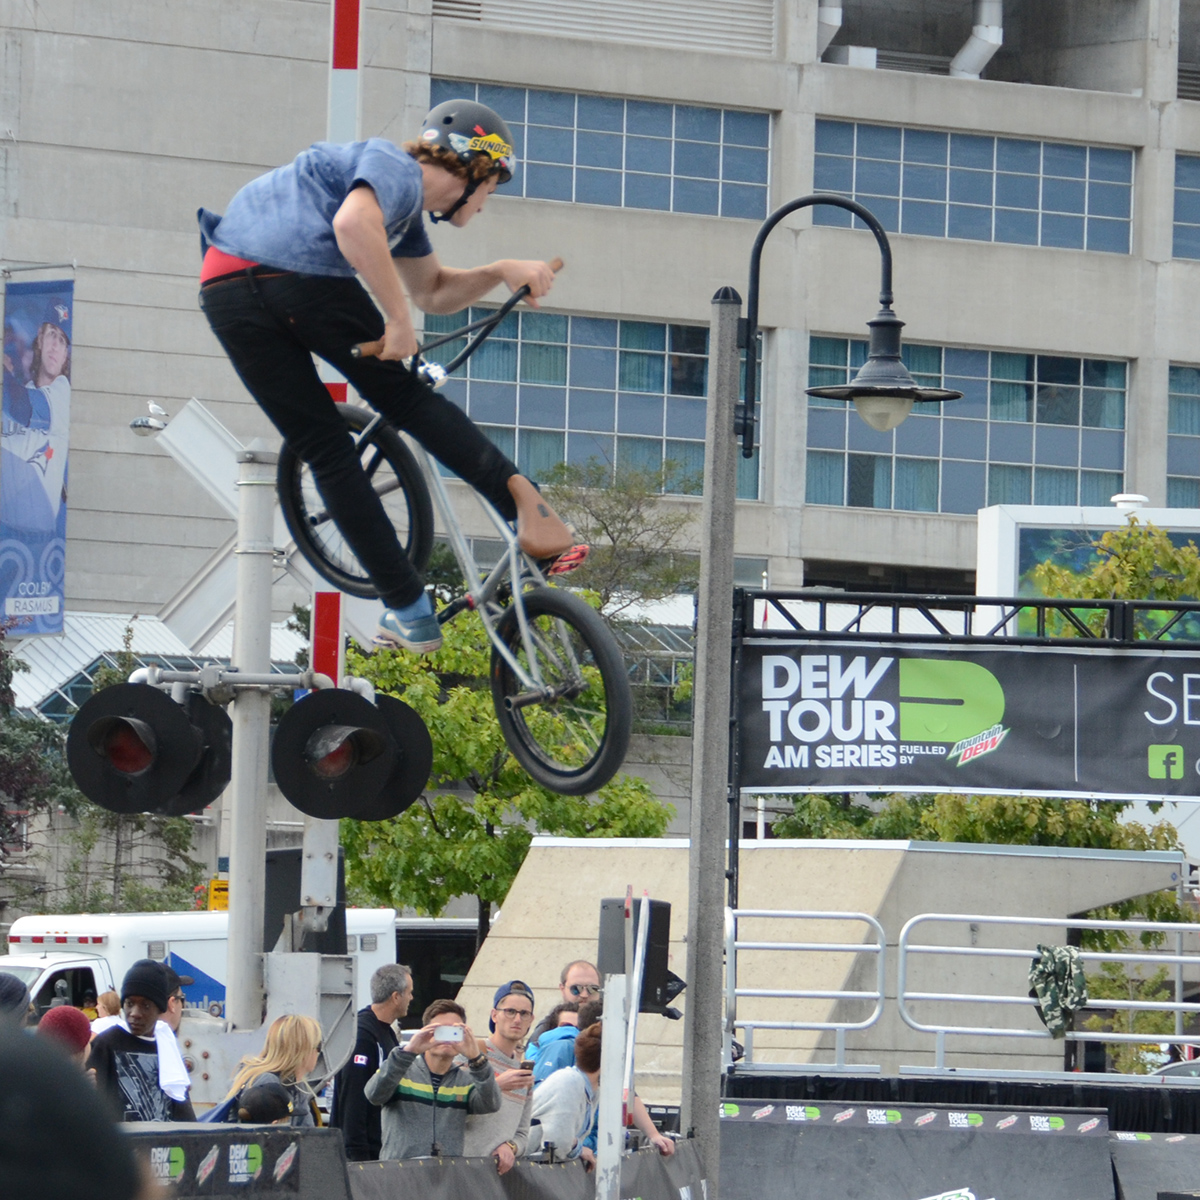 Jamie Cooper Elilis cranks a turndown at Dew Tour Am Series in Toronto